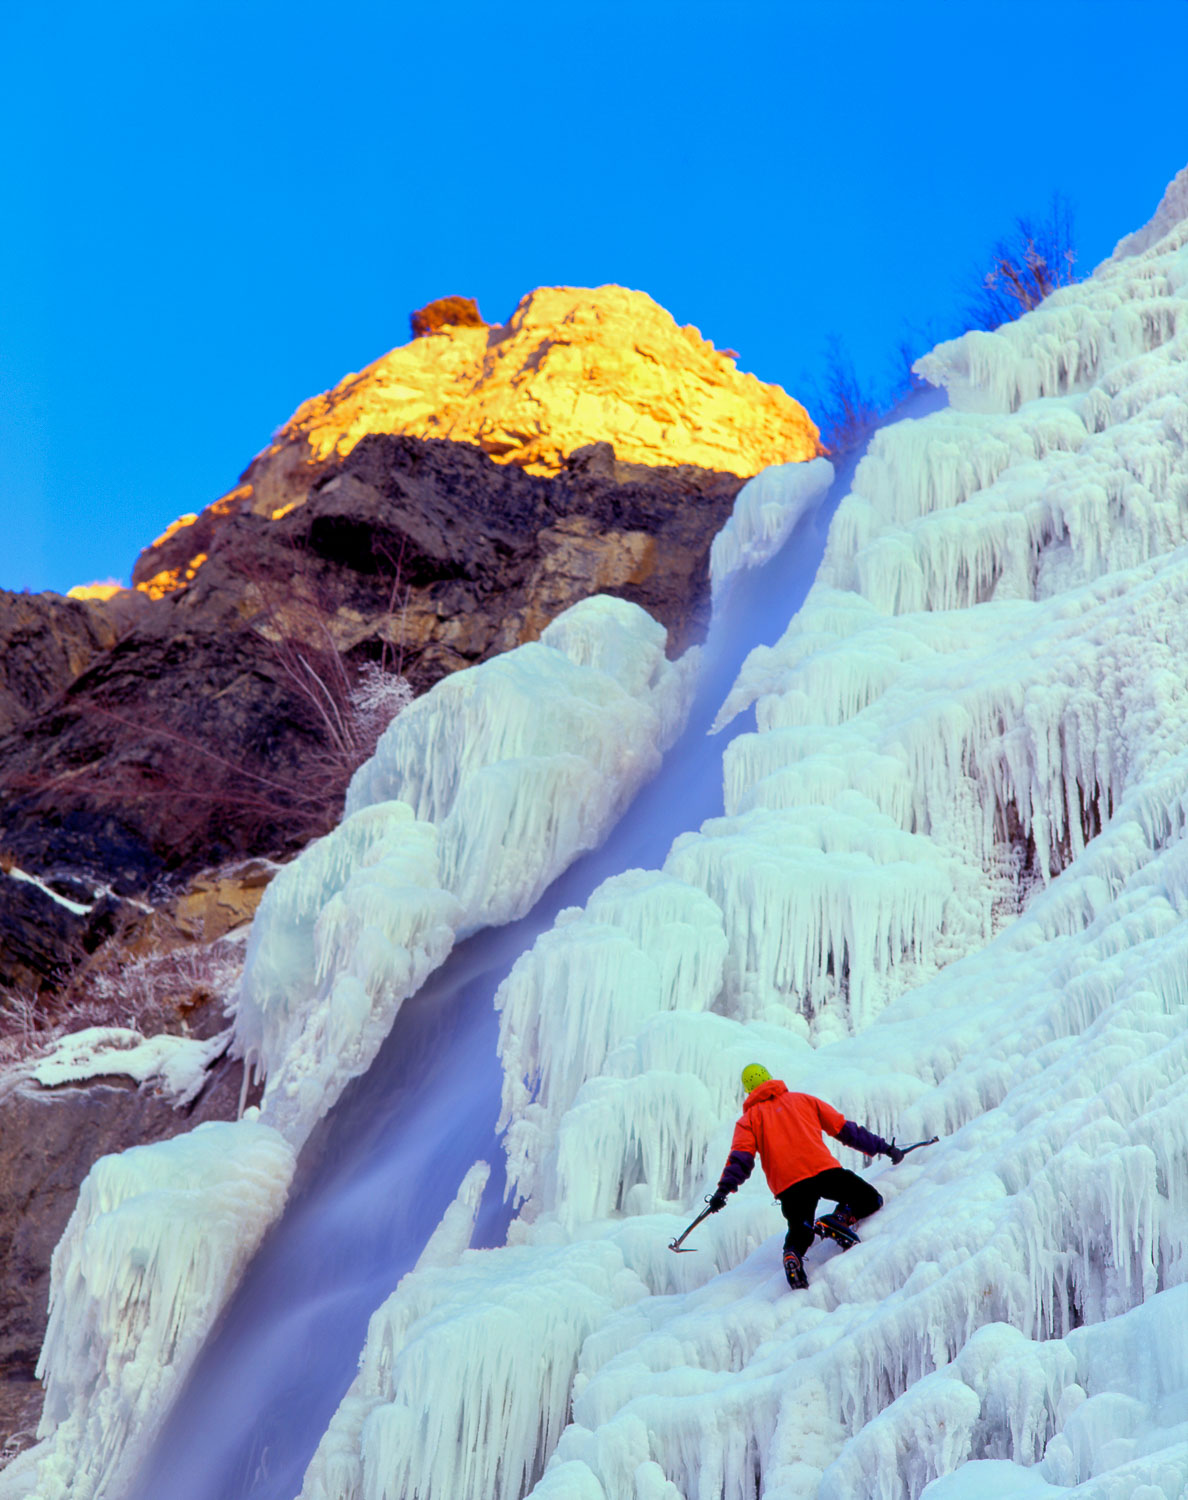 Solo Ice Climber ascends Bridal Veil, Provo Canyon, Wasatch Moun